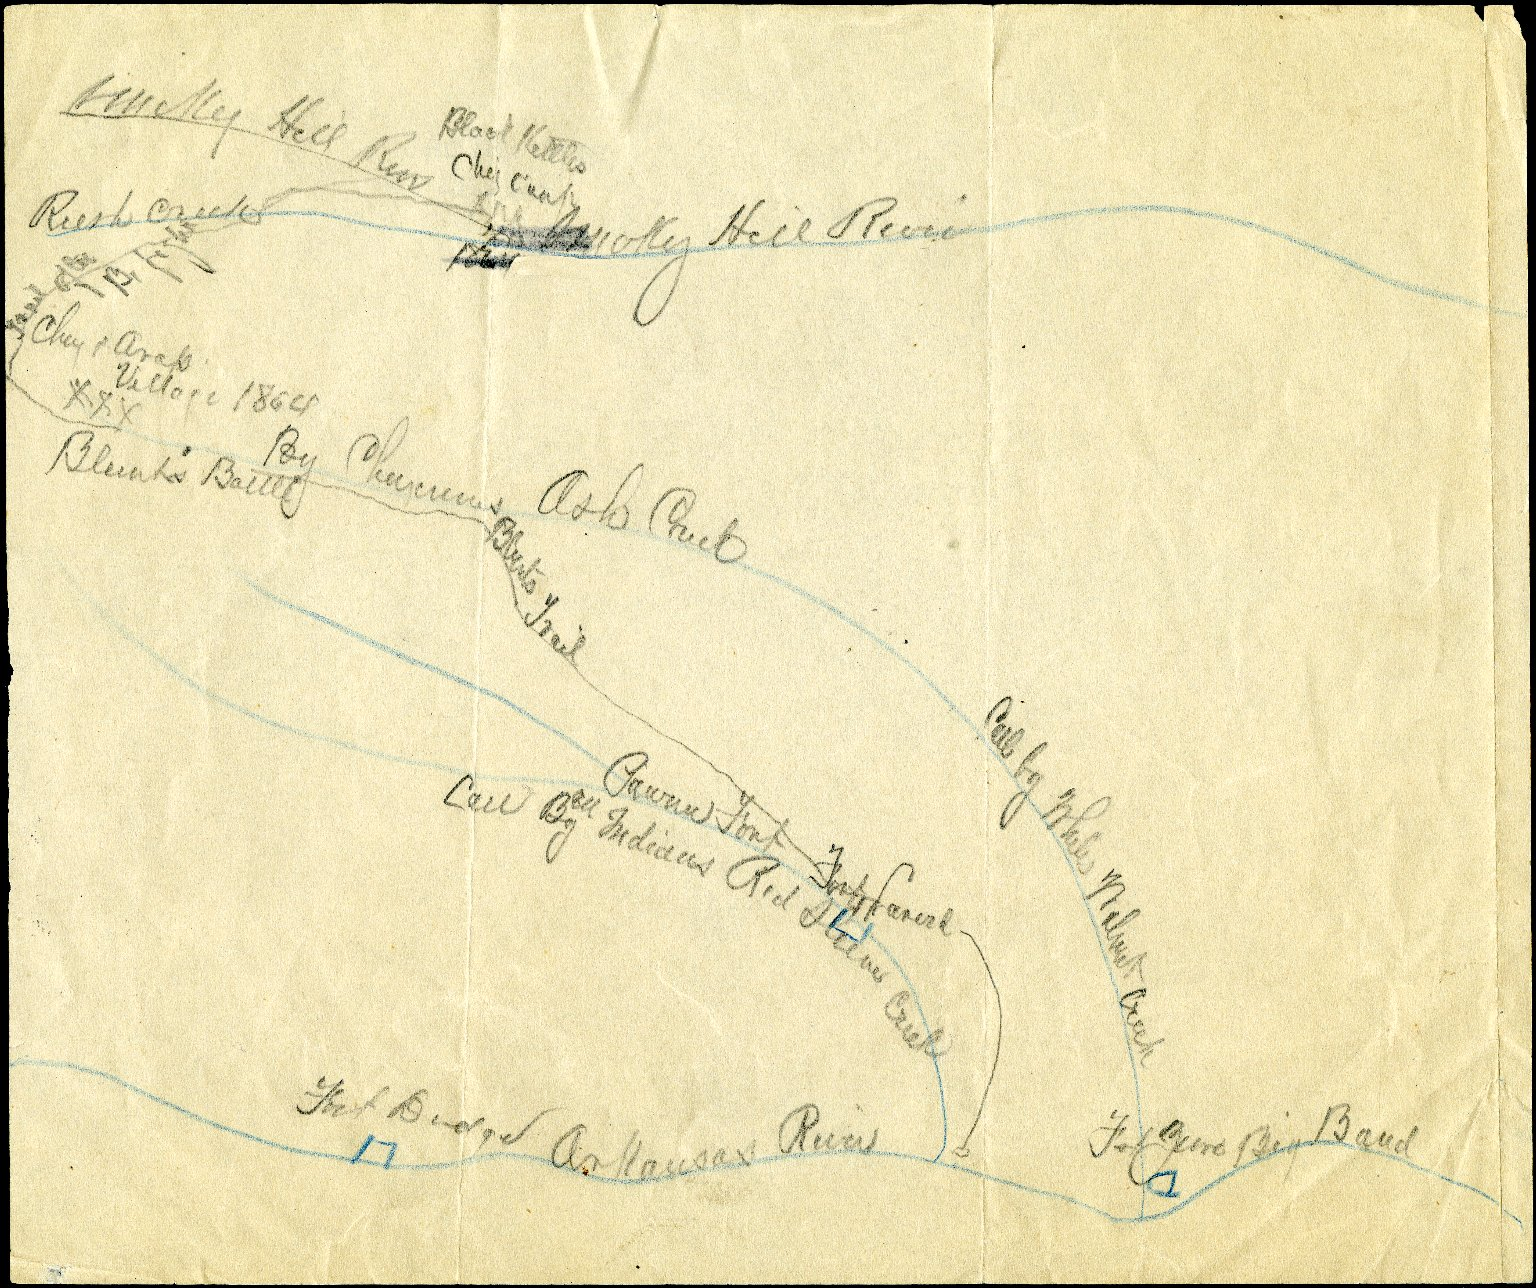 Movement of the Indians at the time of the fight with General James G. Blunt's forces in the summer of 1864